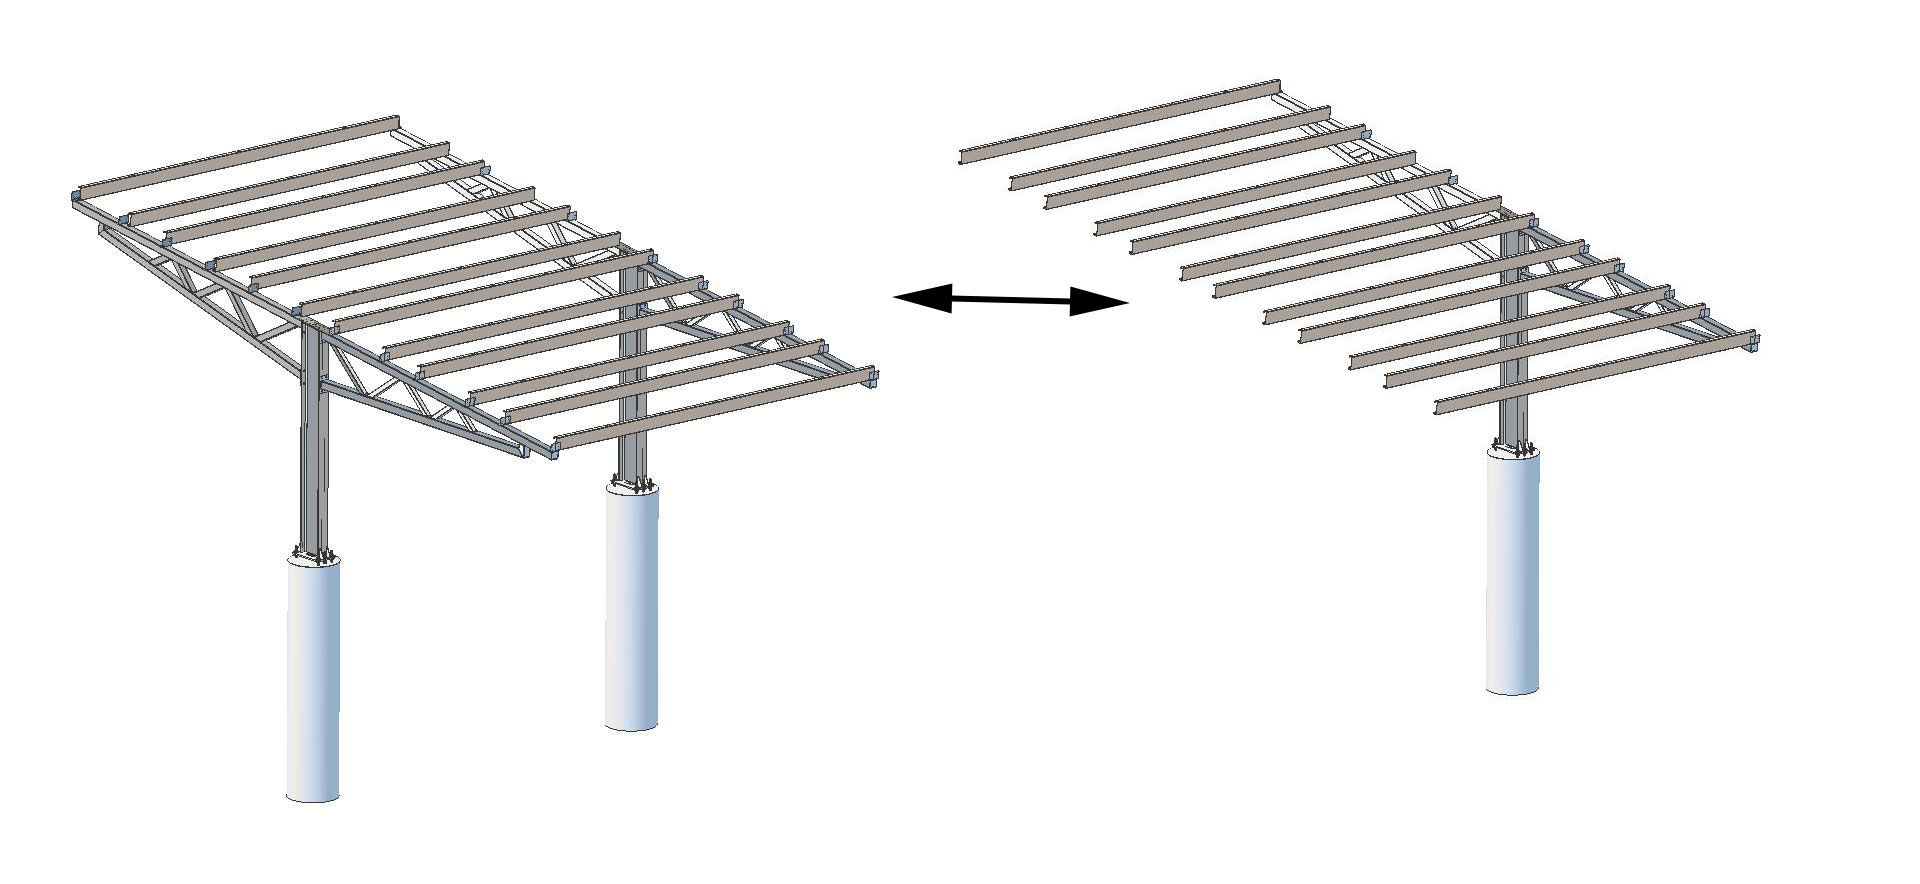 T-Frame solar carport sections image.